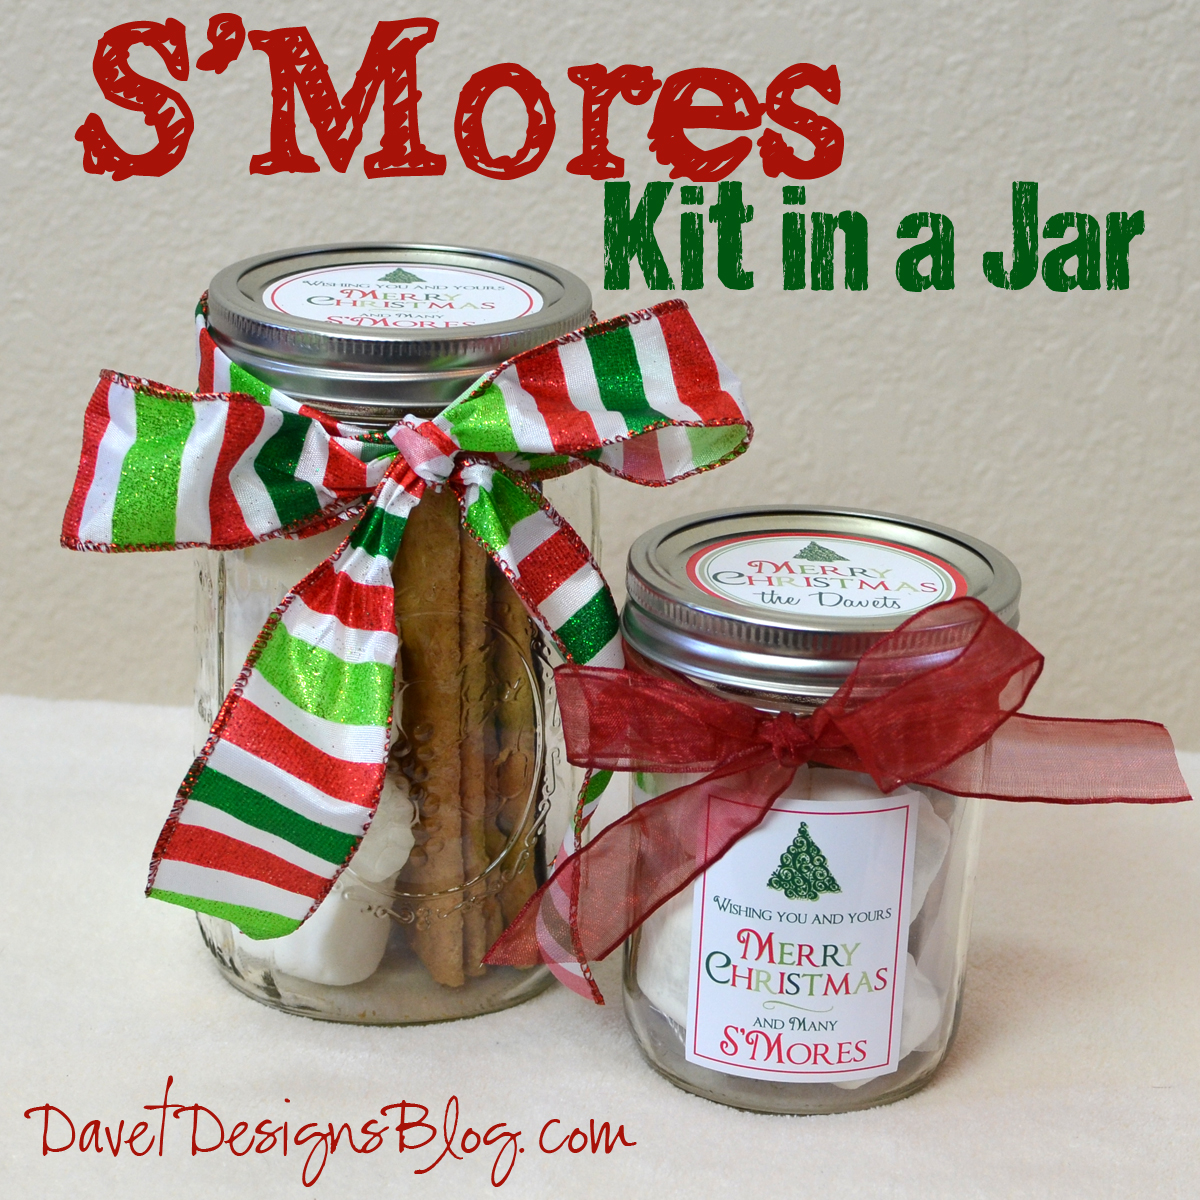 S'Mores Kit in a jar